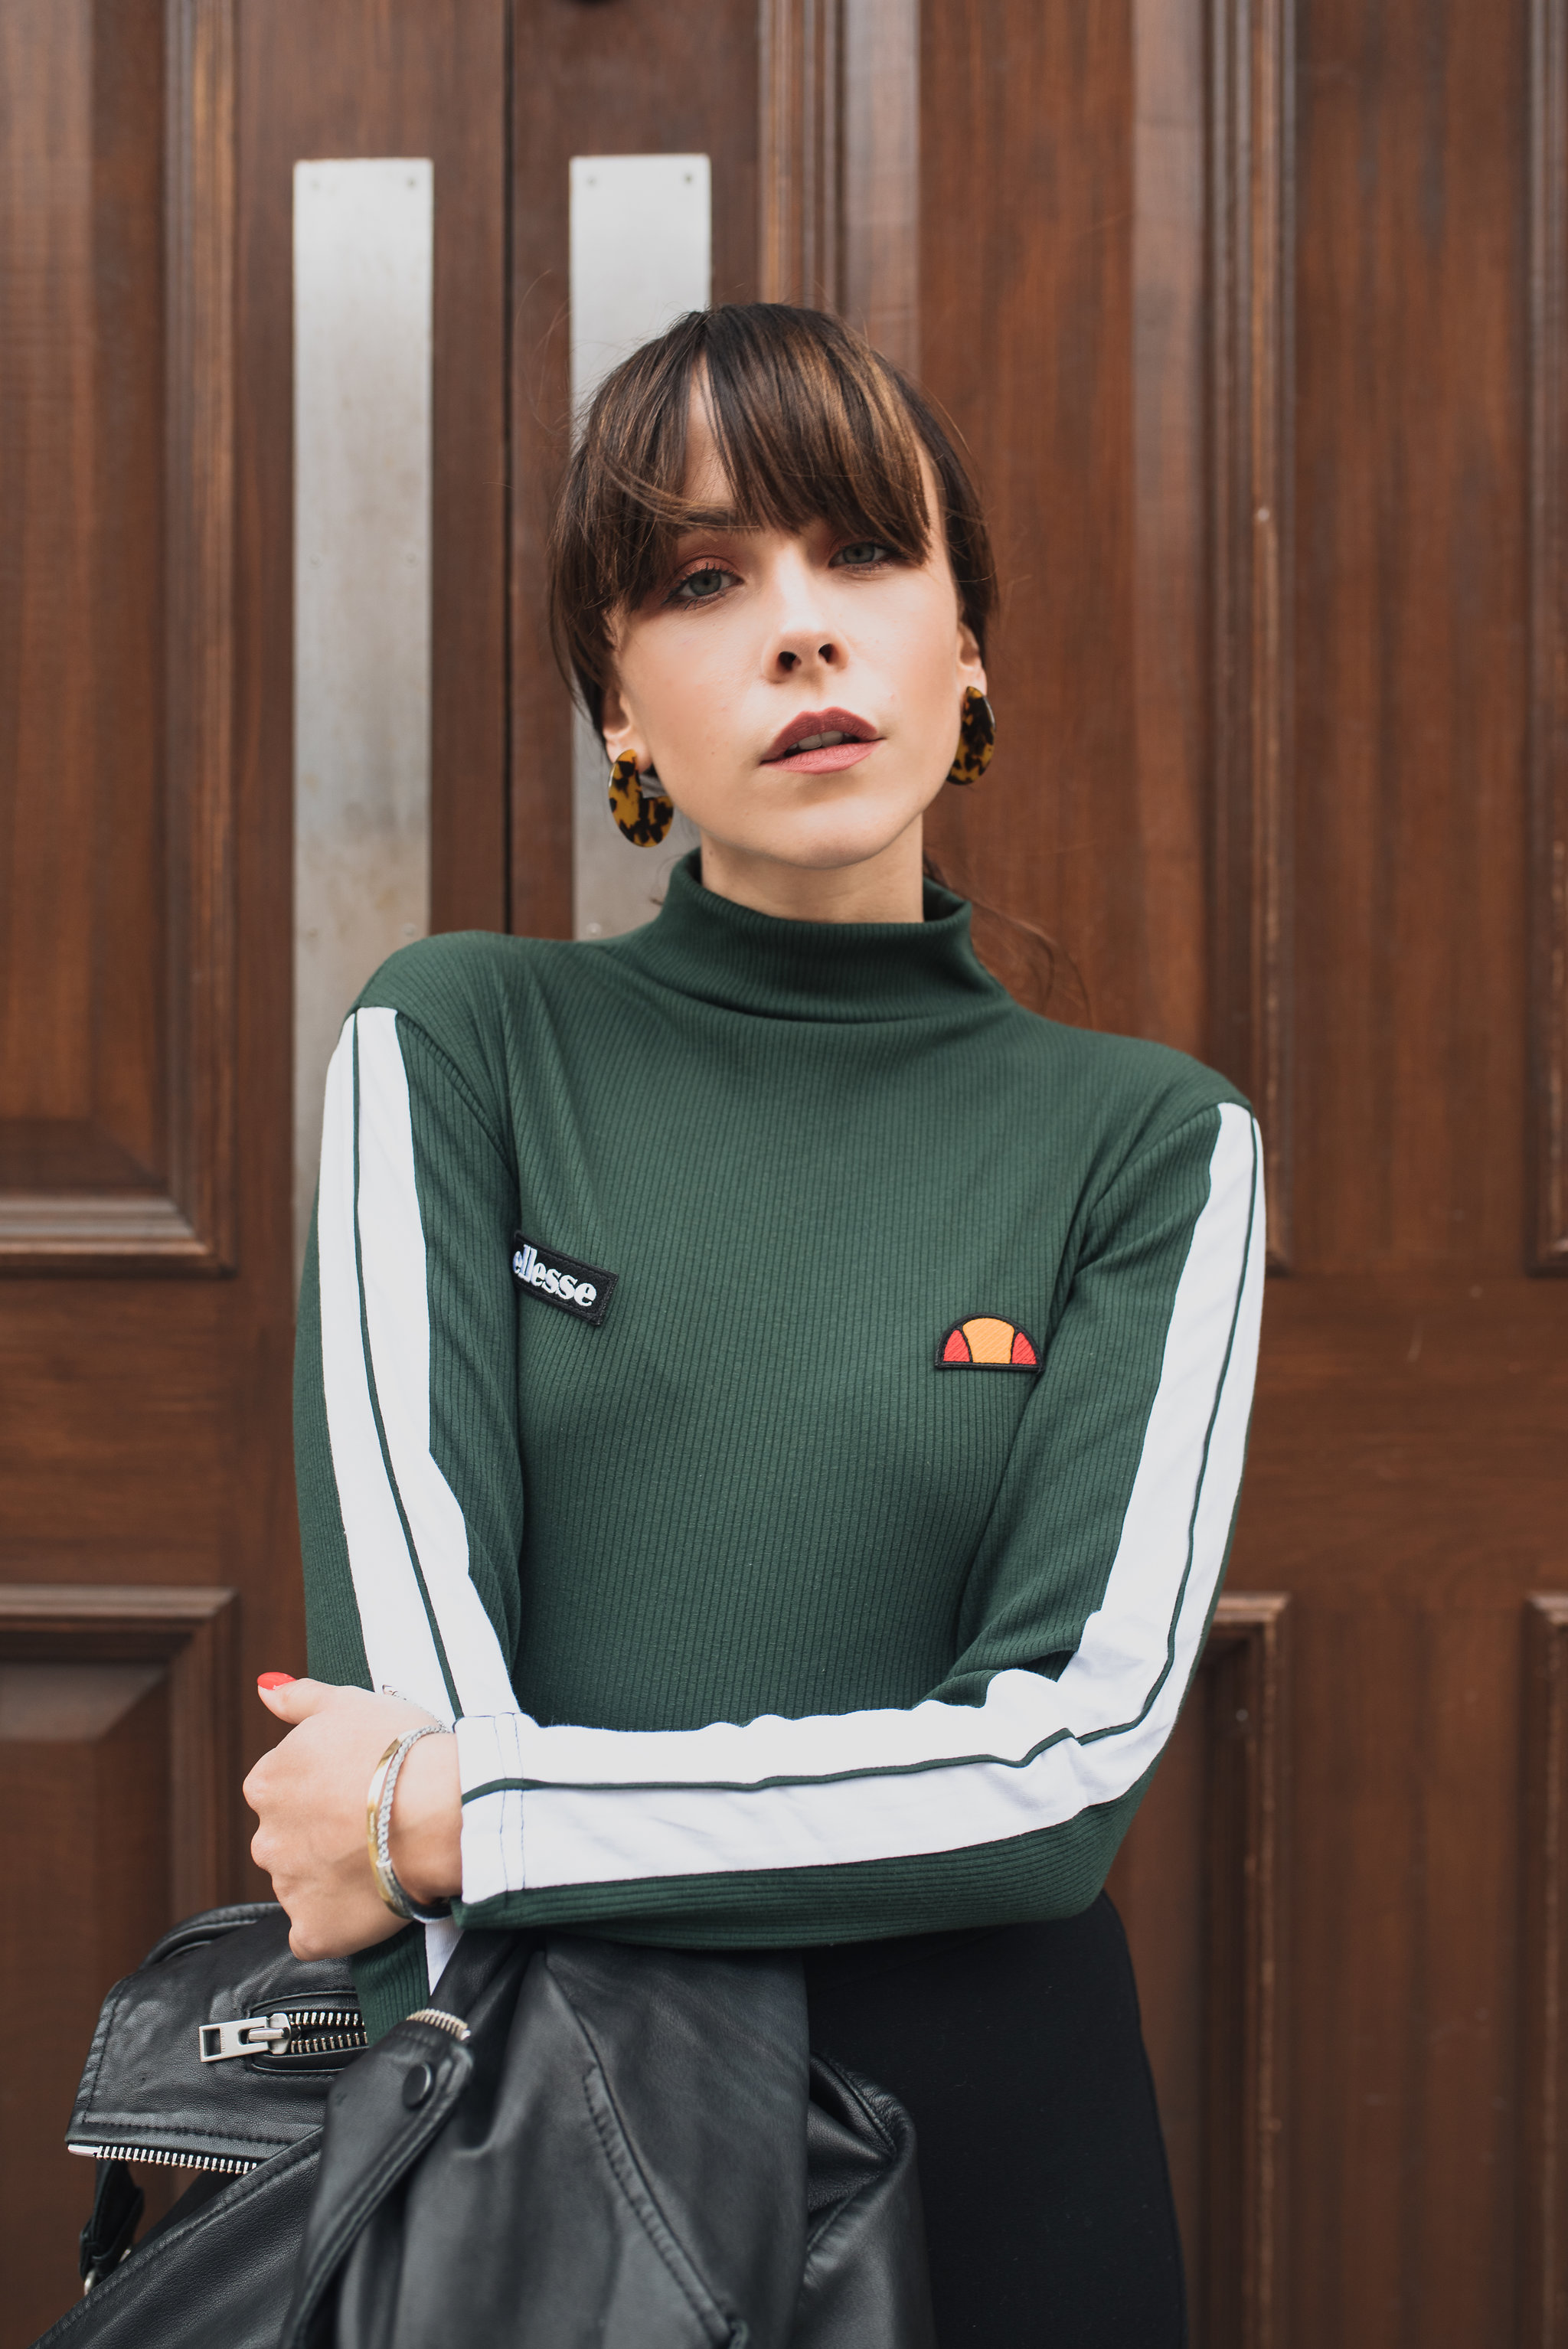 MEGAN ELLABY HOW TO WEAR SPORTSWEAR AS EVENINGWEAR